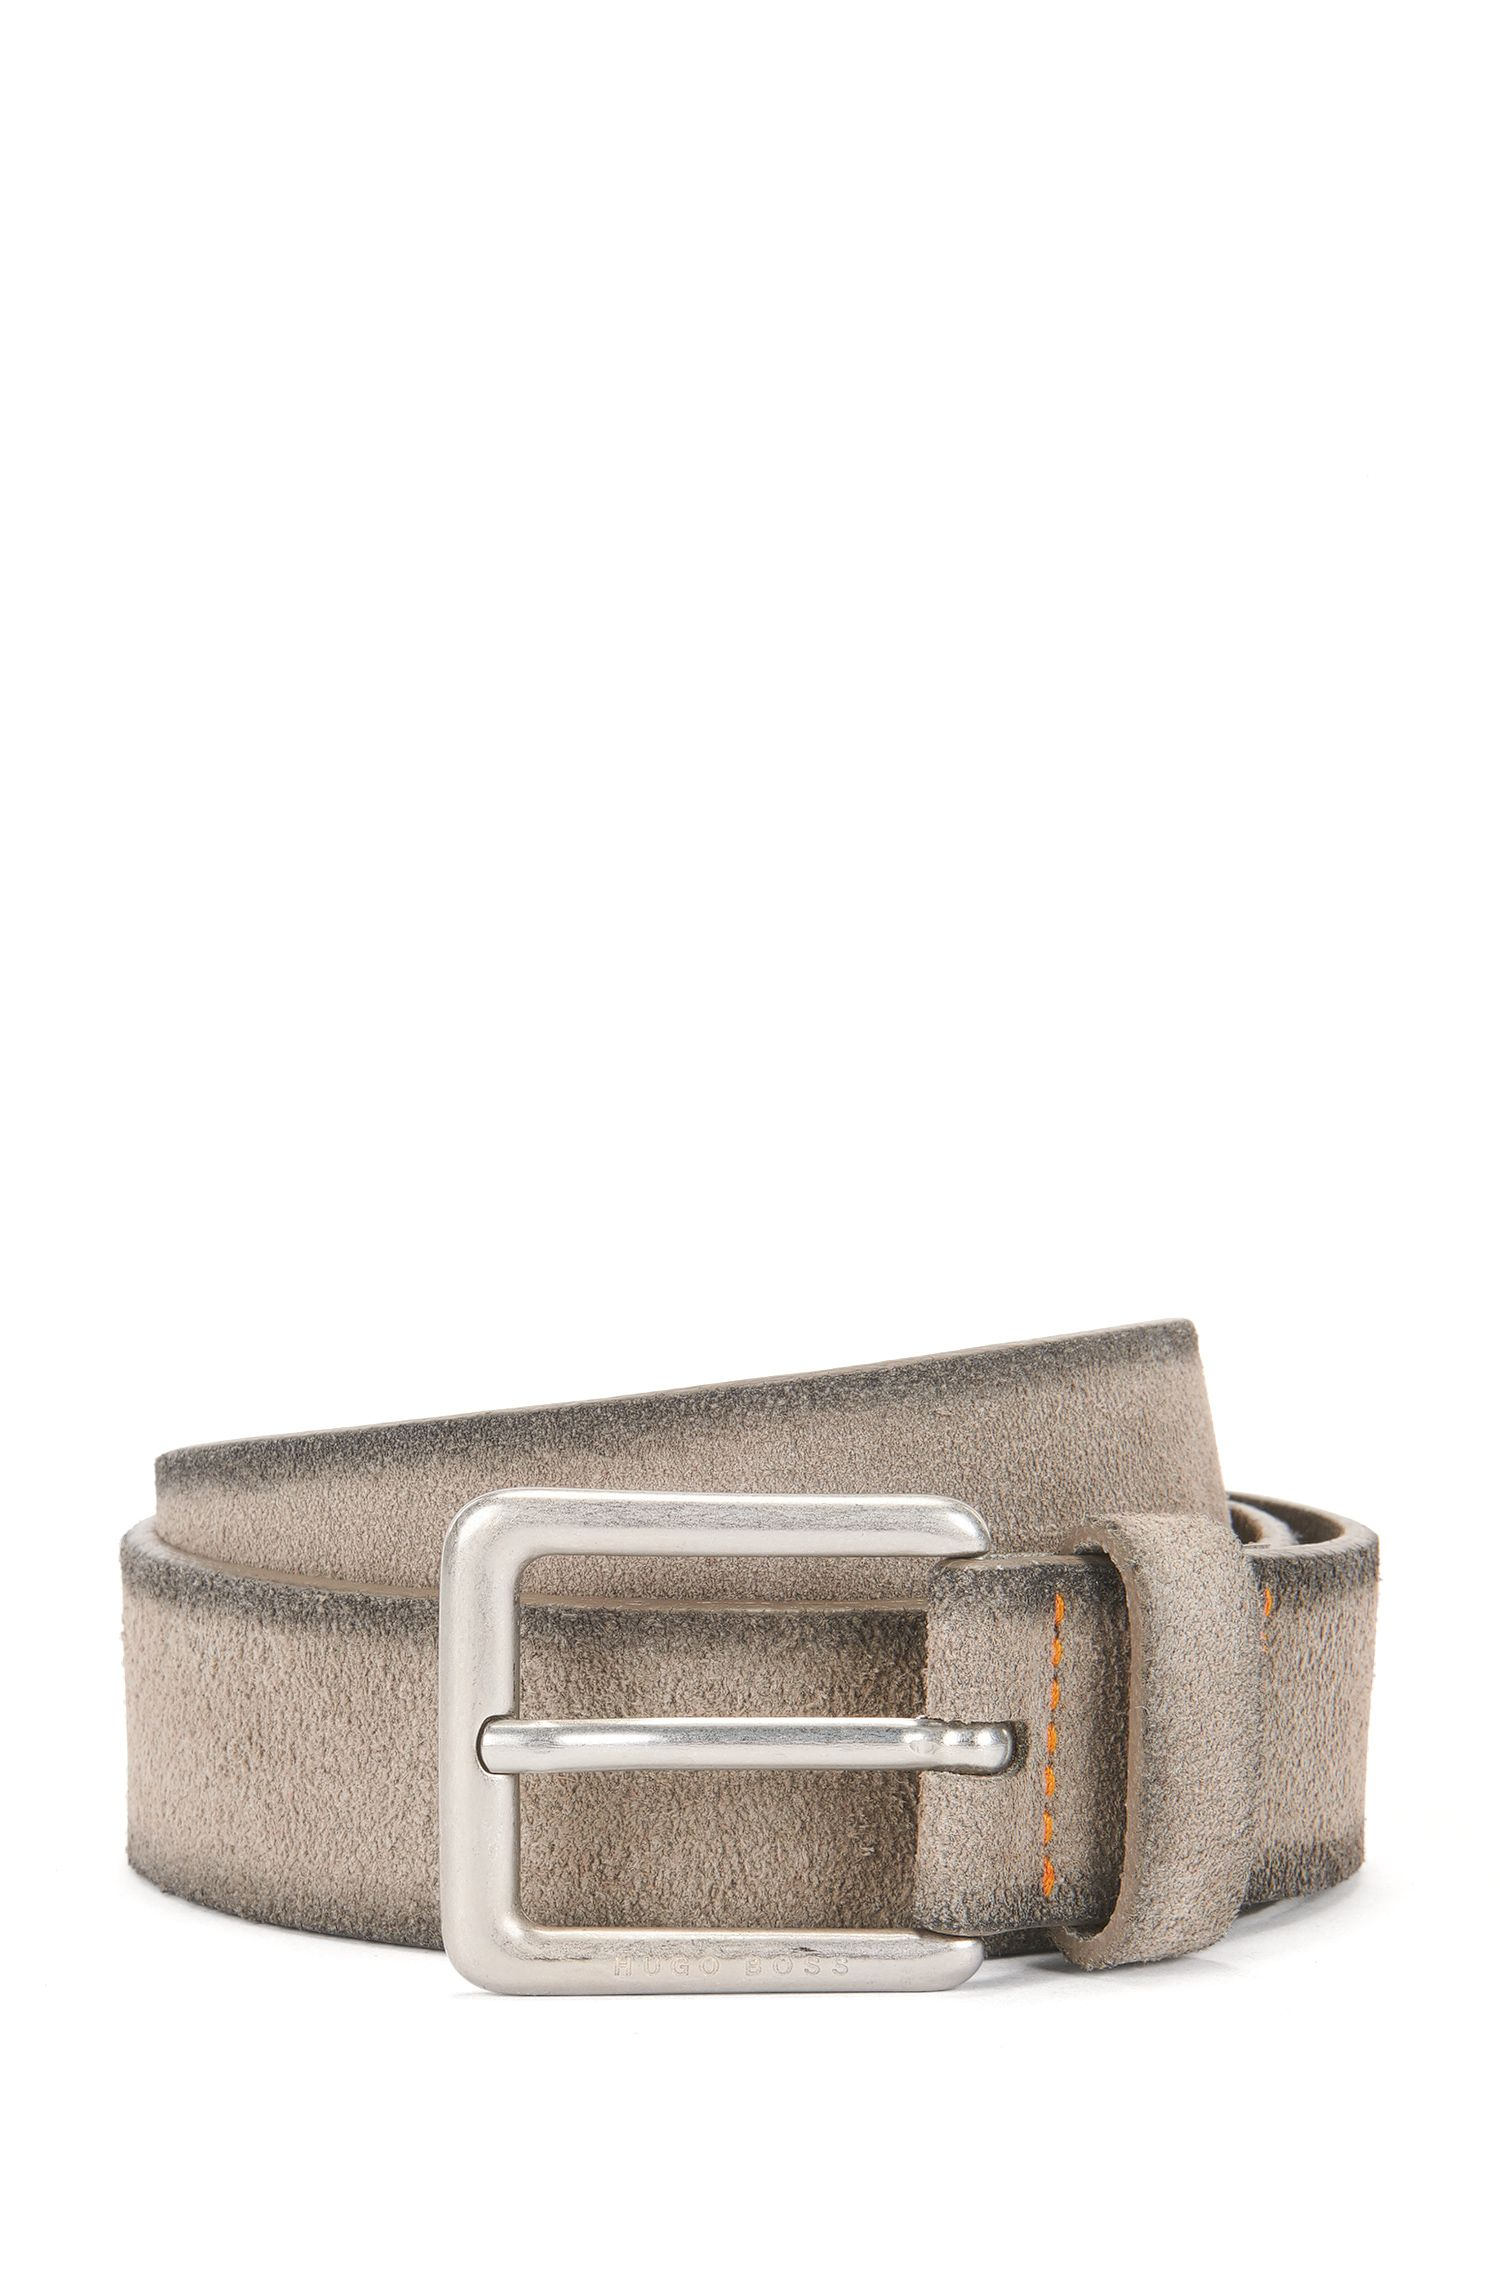 Casual belt in washed suede with antique-effect buckle